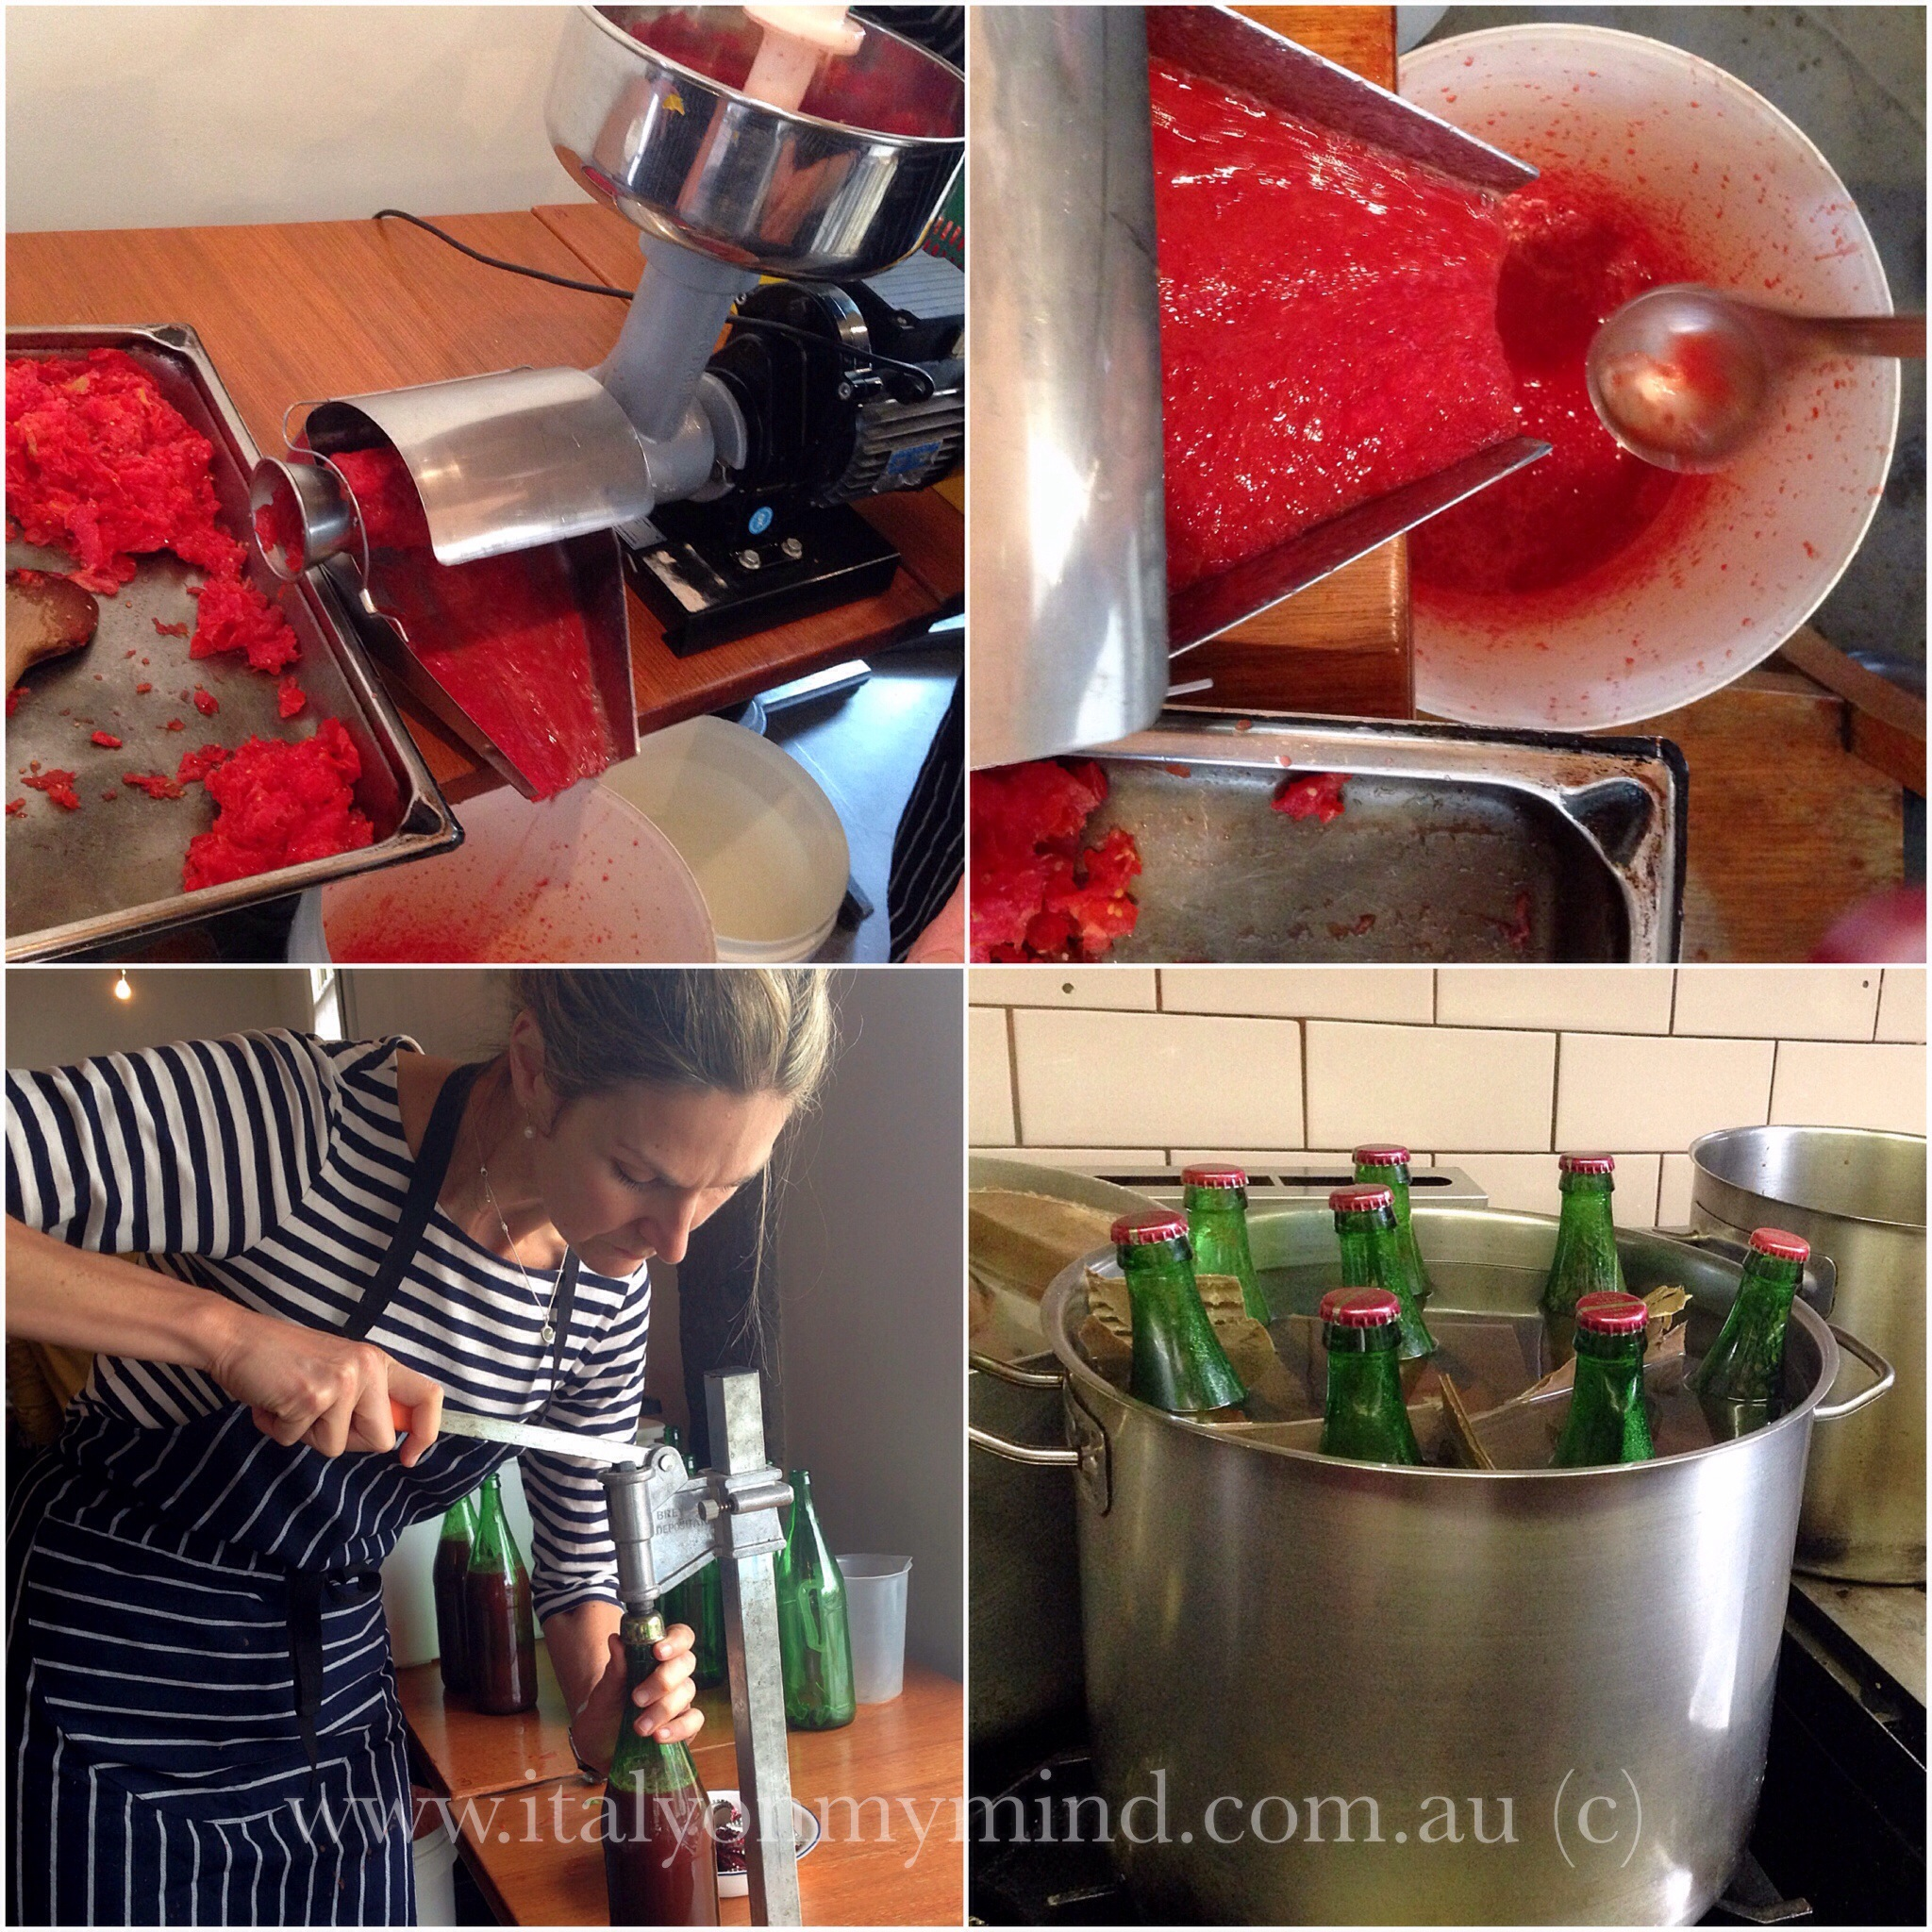 Tomato passata making at Bar Idda